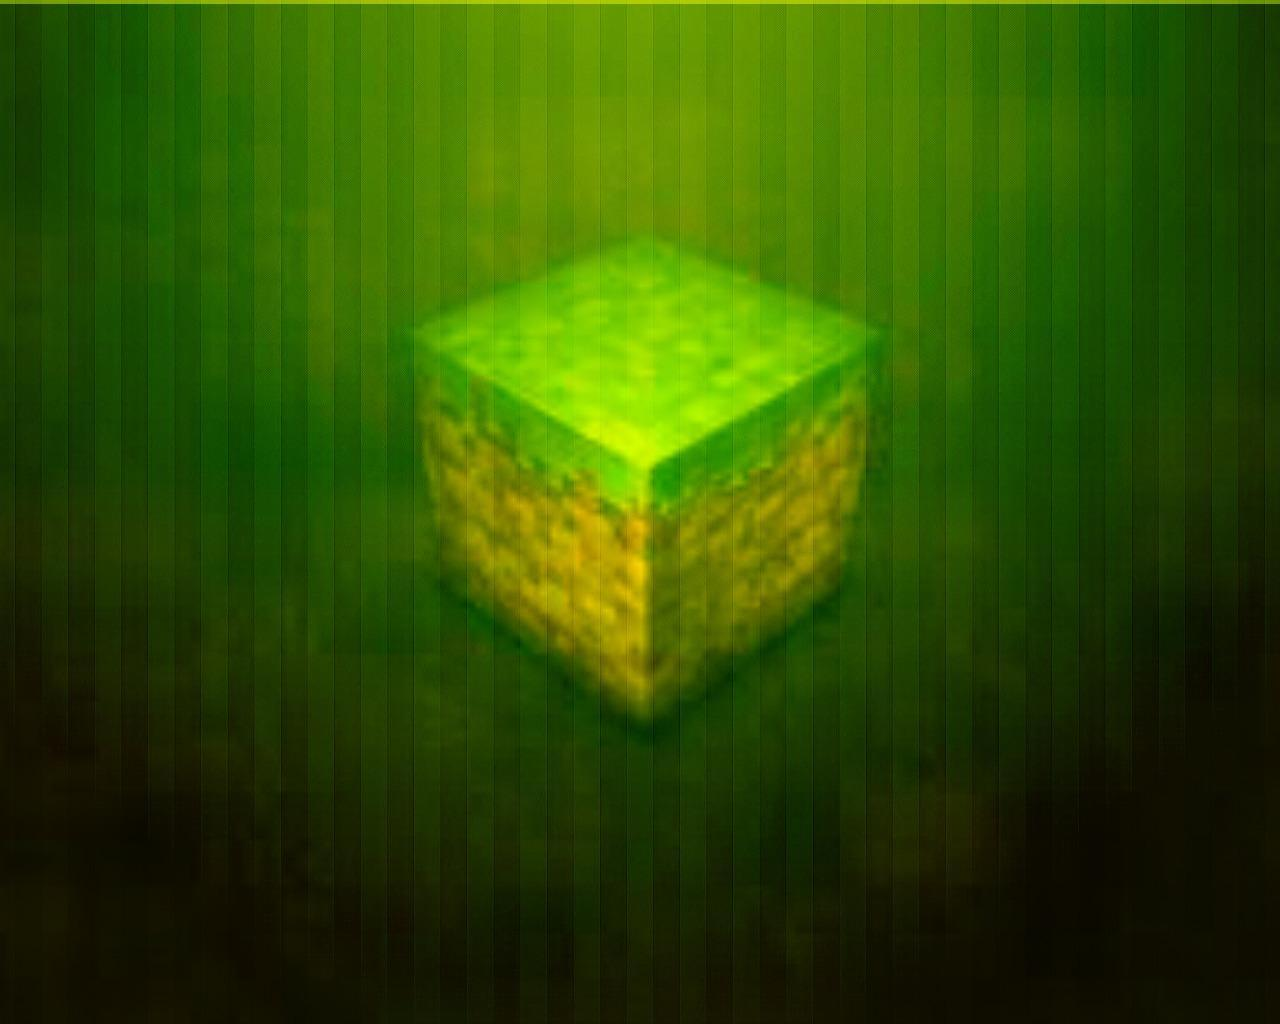 Epic Minecraft Backgrounds 1280x1024